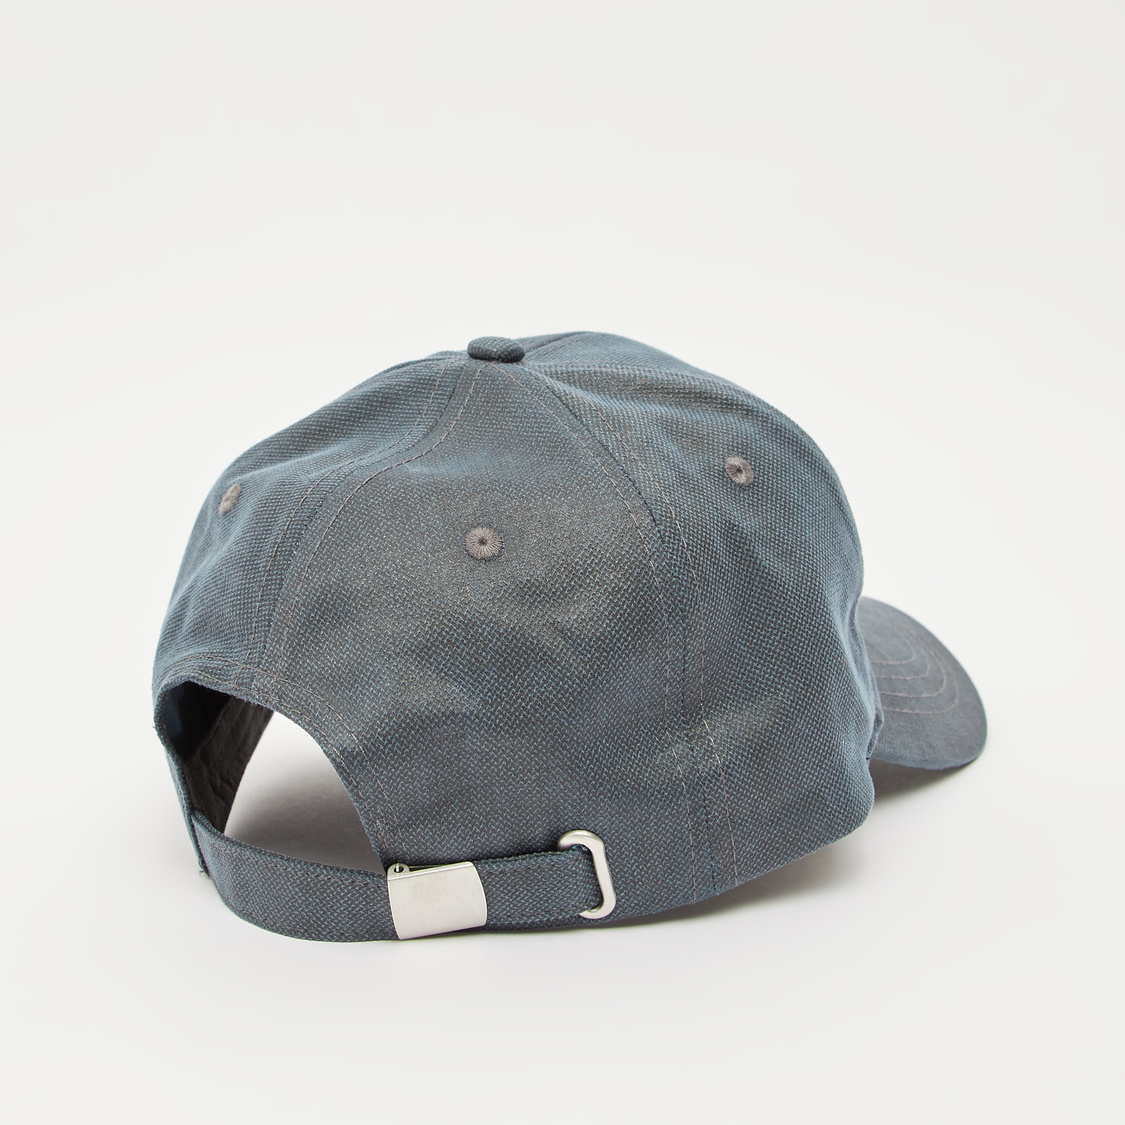 Textured Cap with Applique Detail and Plate Buckle Closure